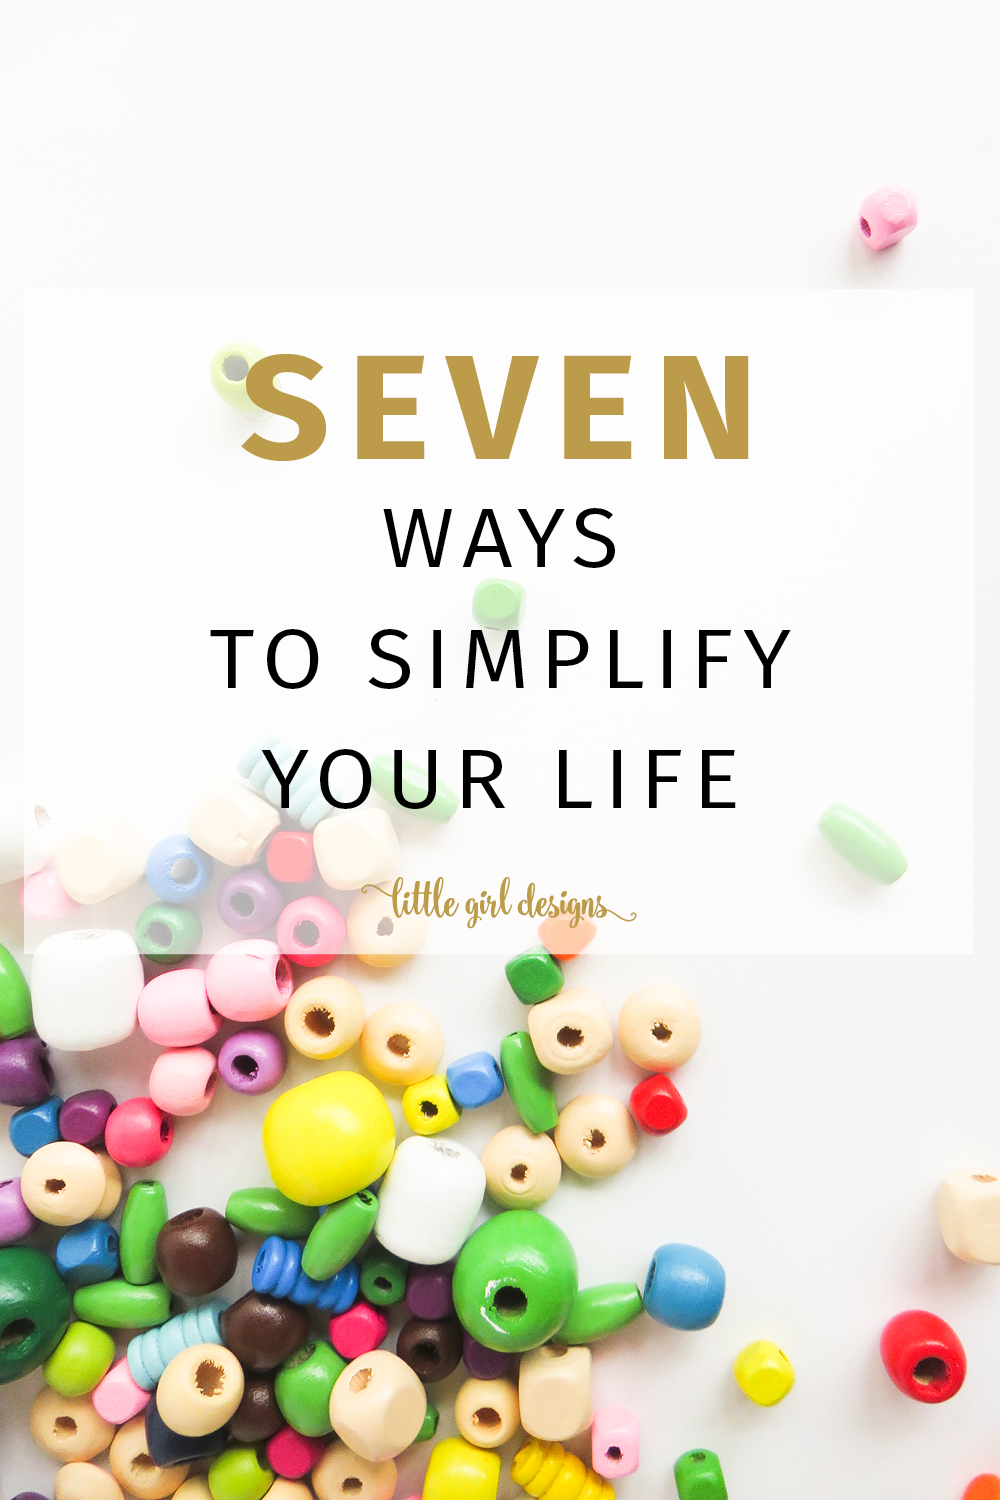 Finally, kid-friendly and real ways to simplify your life! I'm going to work on #1 and #7 this month!